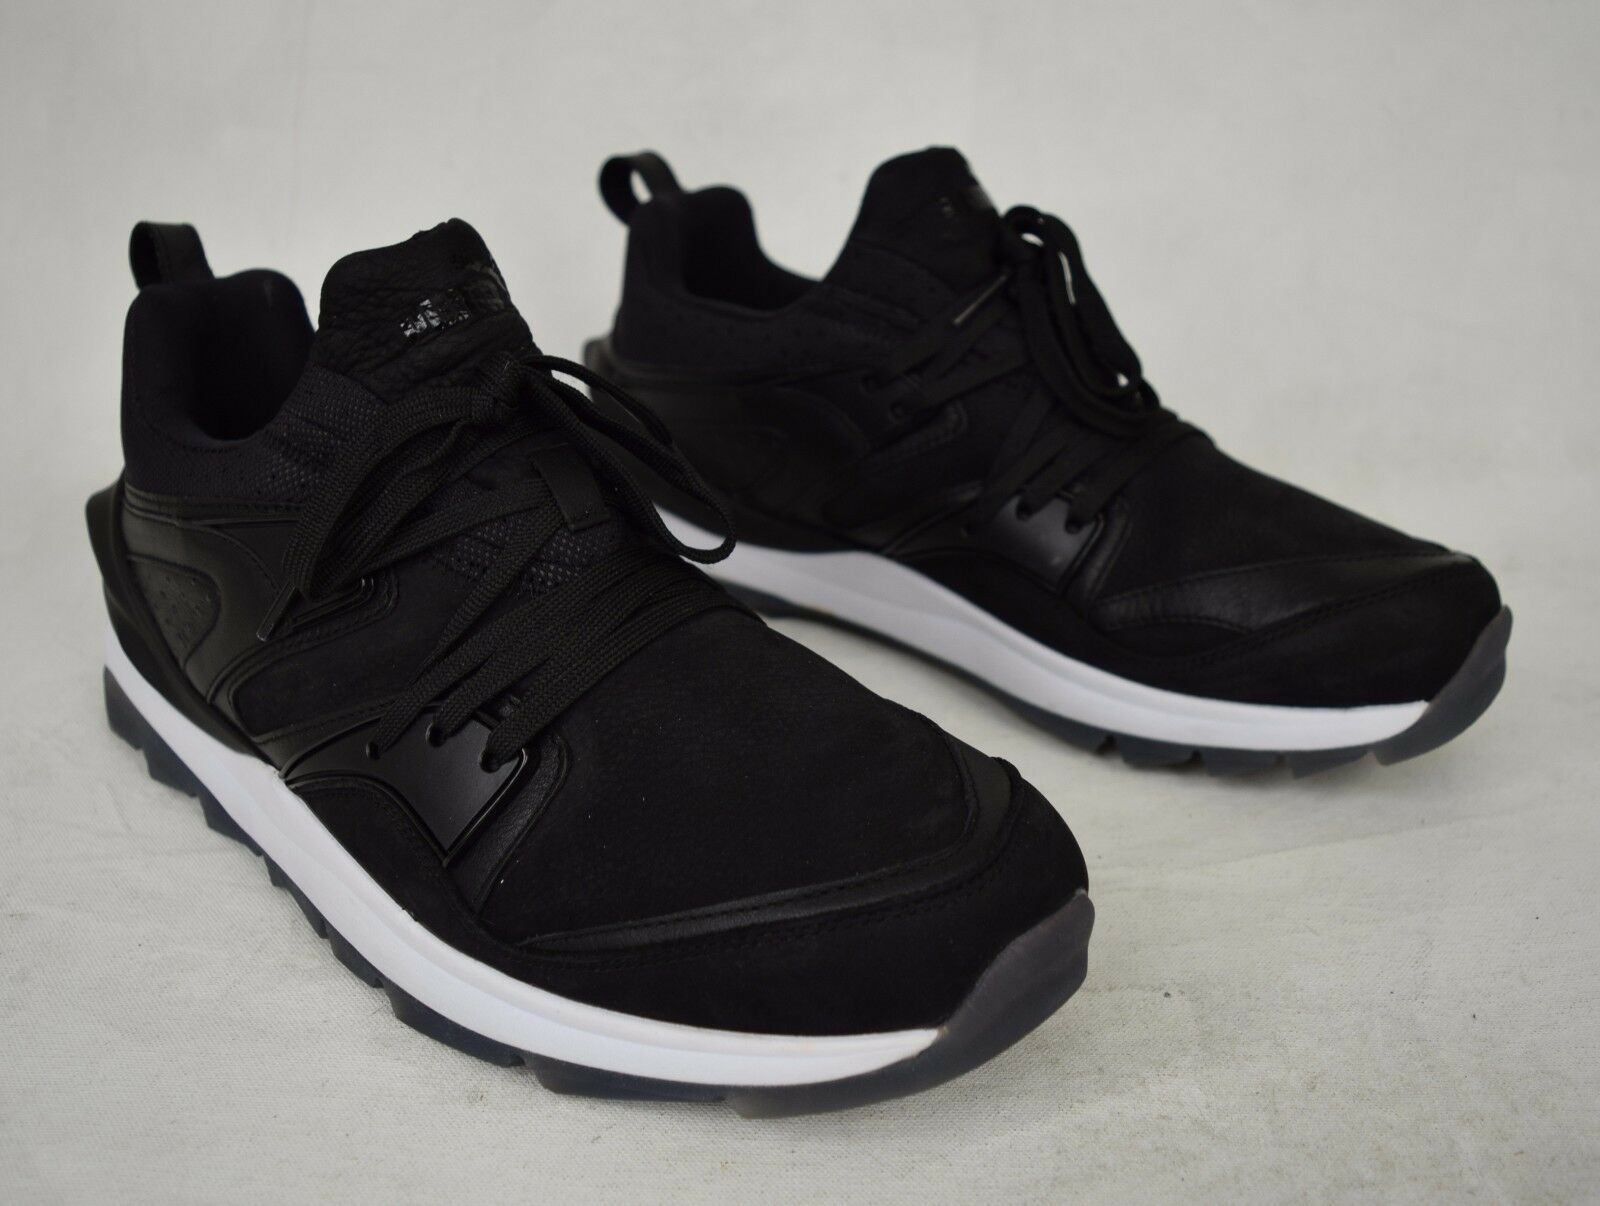 Puma Shoes Trinomic Blaze Swift Tech Black White Sneakers 11 Mens 357824 New